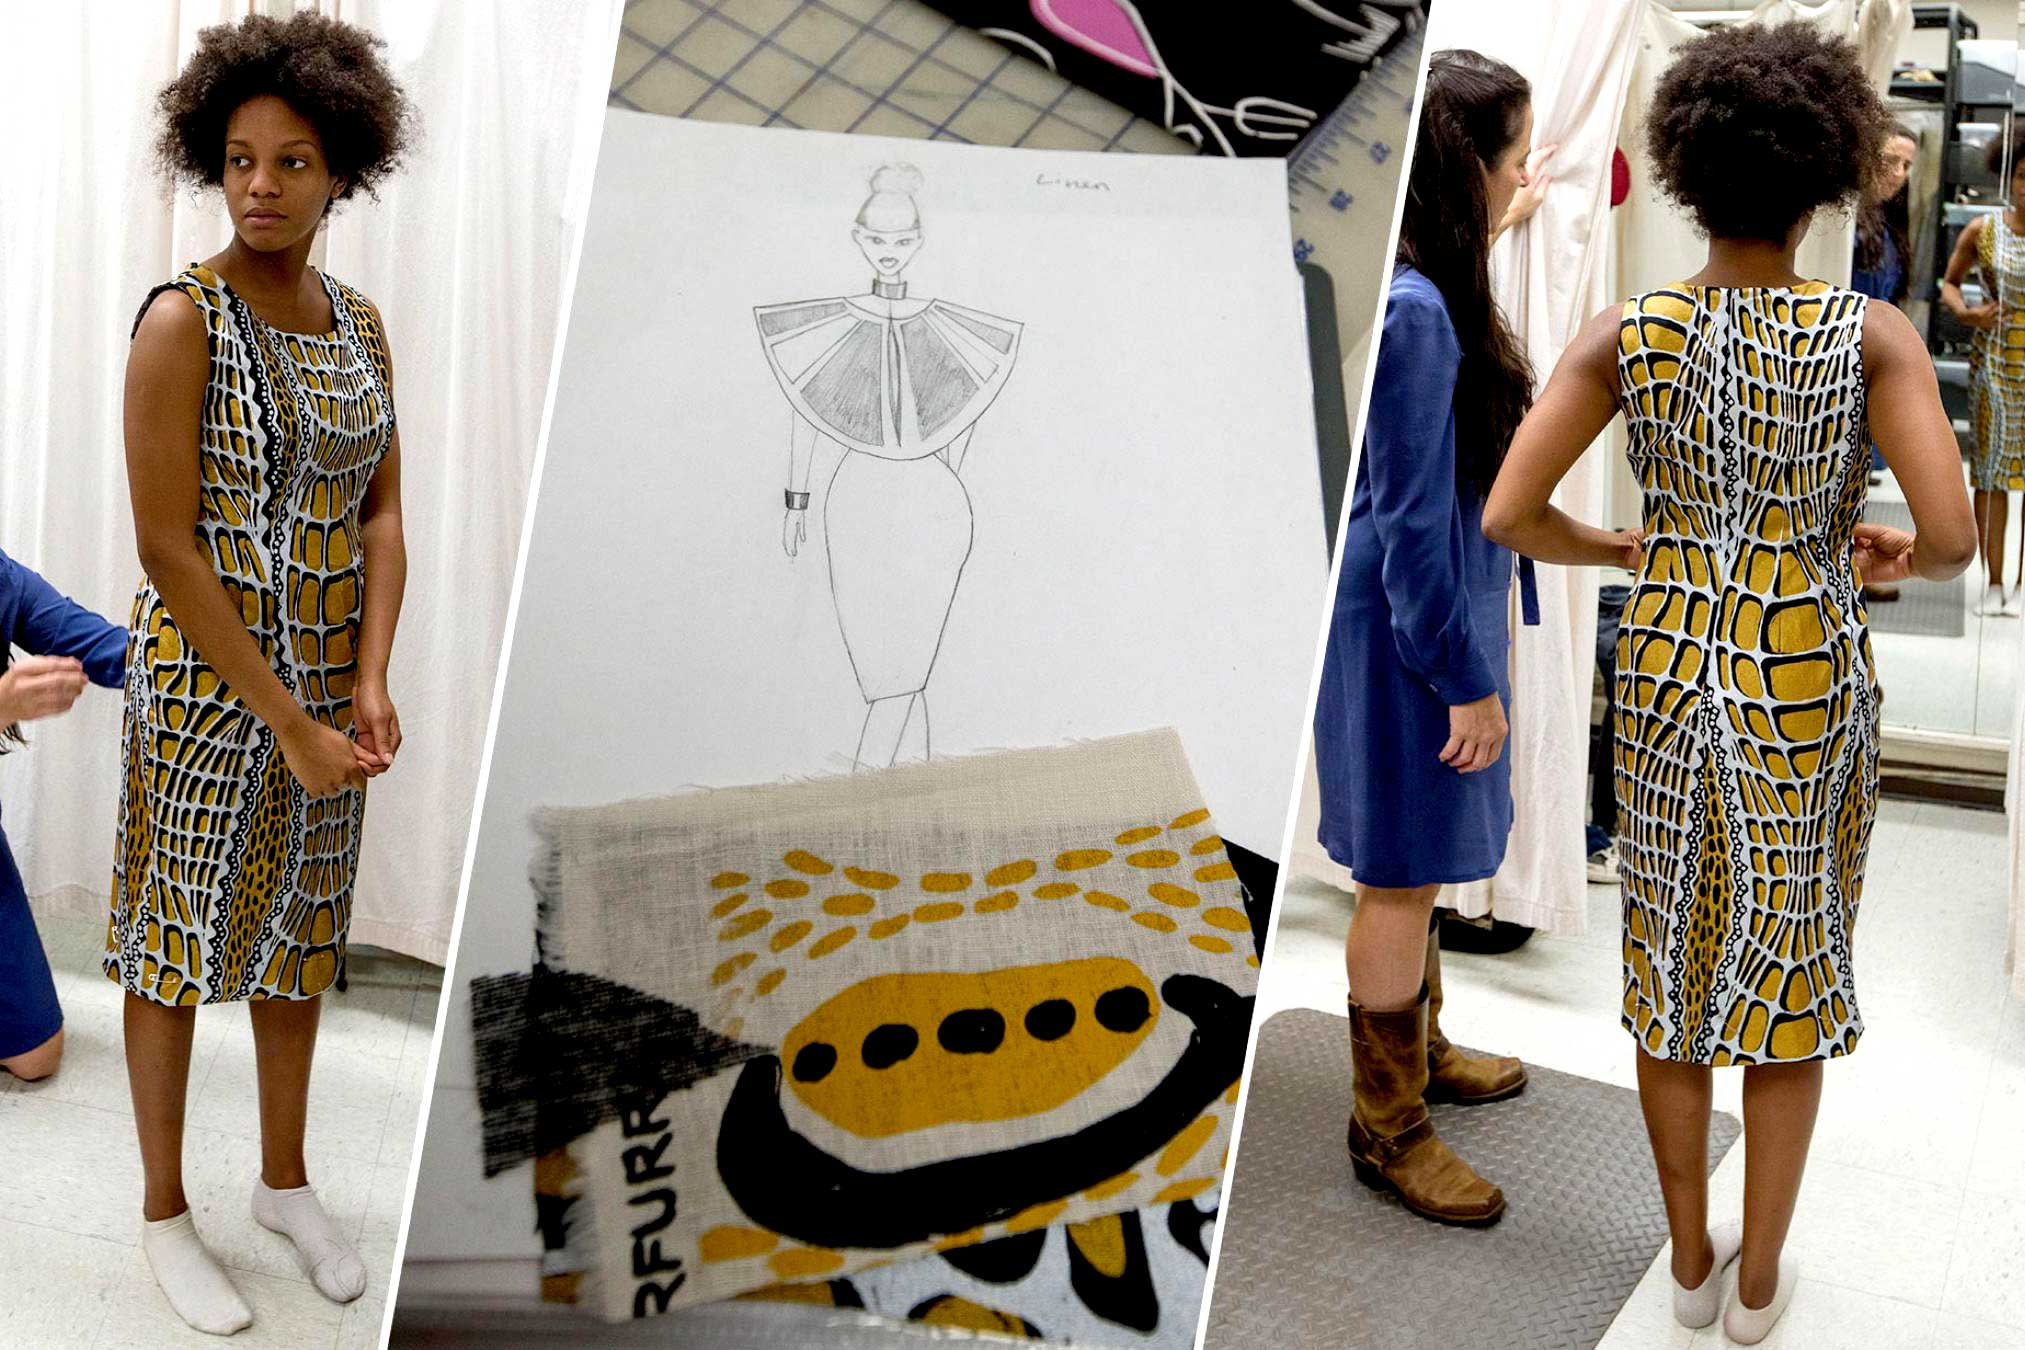 Fourth-year student Ismaelia Dejoie designed and sewed the dress pictured here to emphasize the striking pattern of the crocodile print by artist Aaron McTaggart. (Photo by Dan Addison, University Communications)